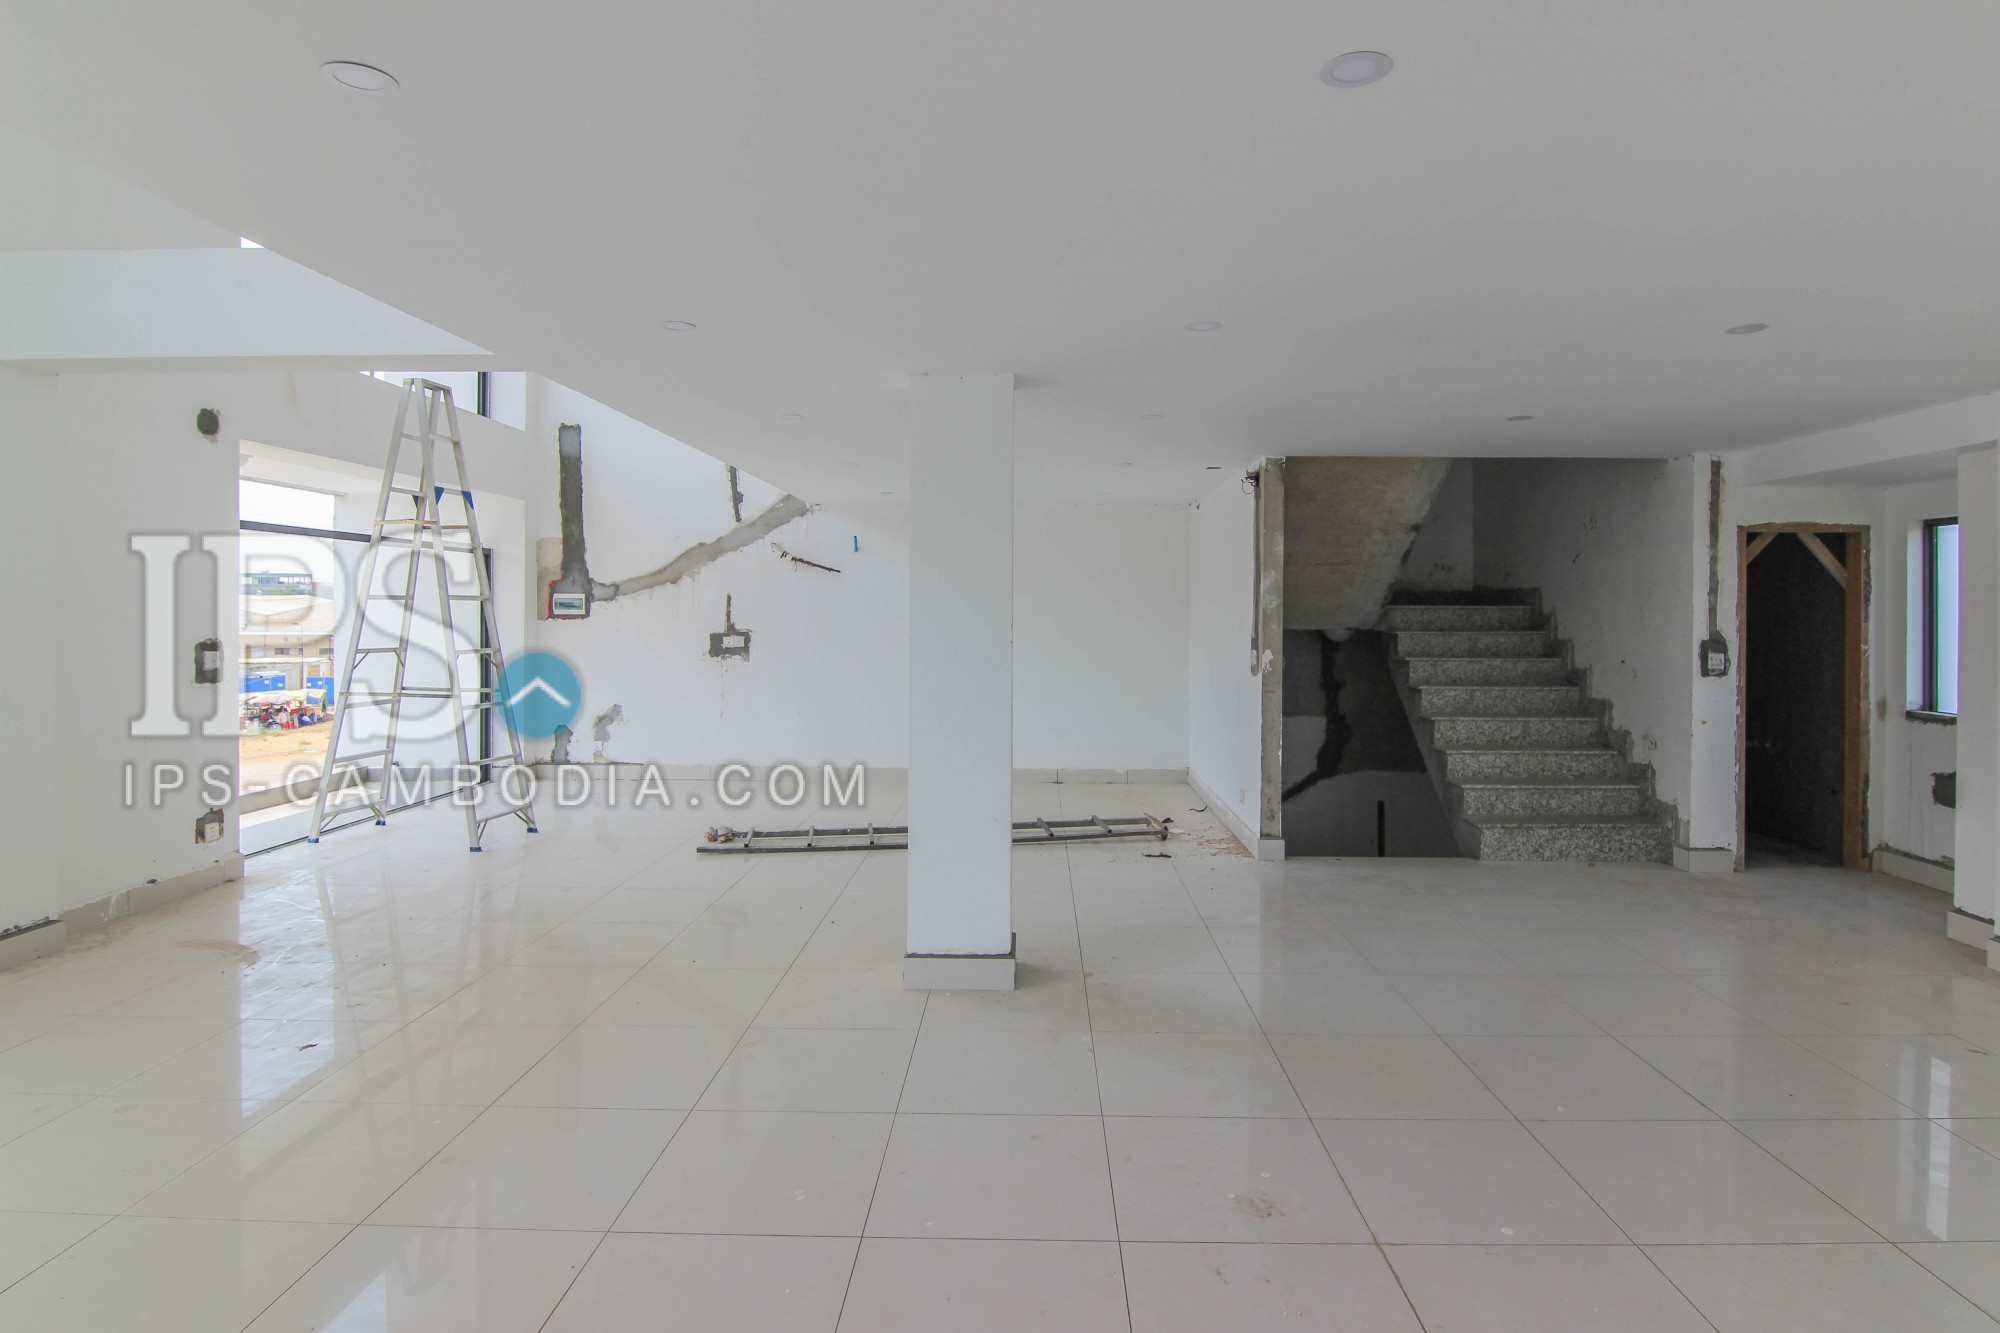 Retail/Business Space For Rent - Chak Angrae Kraom